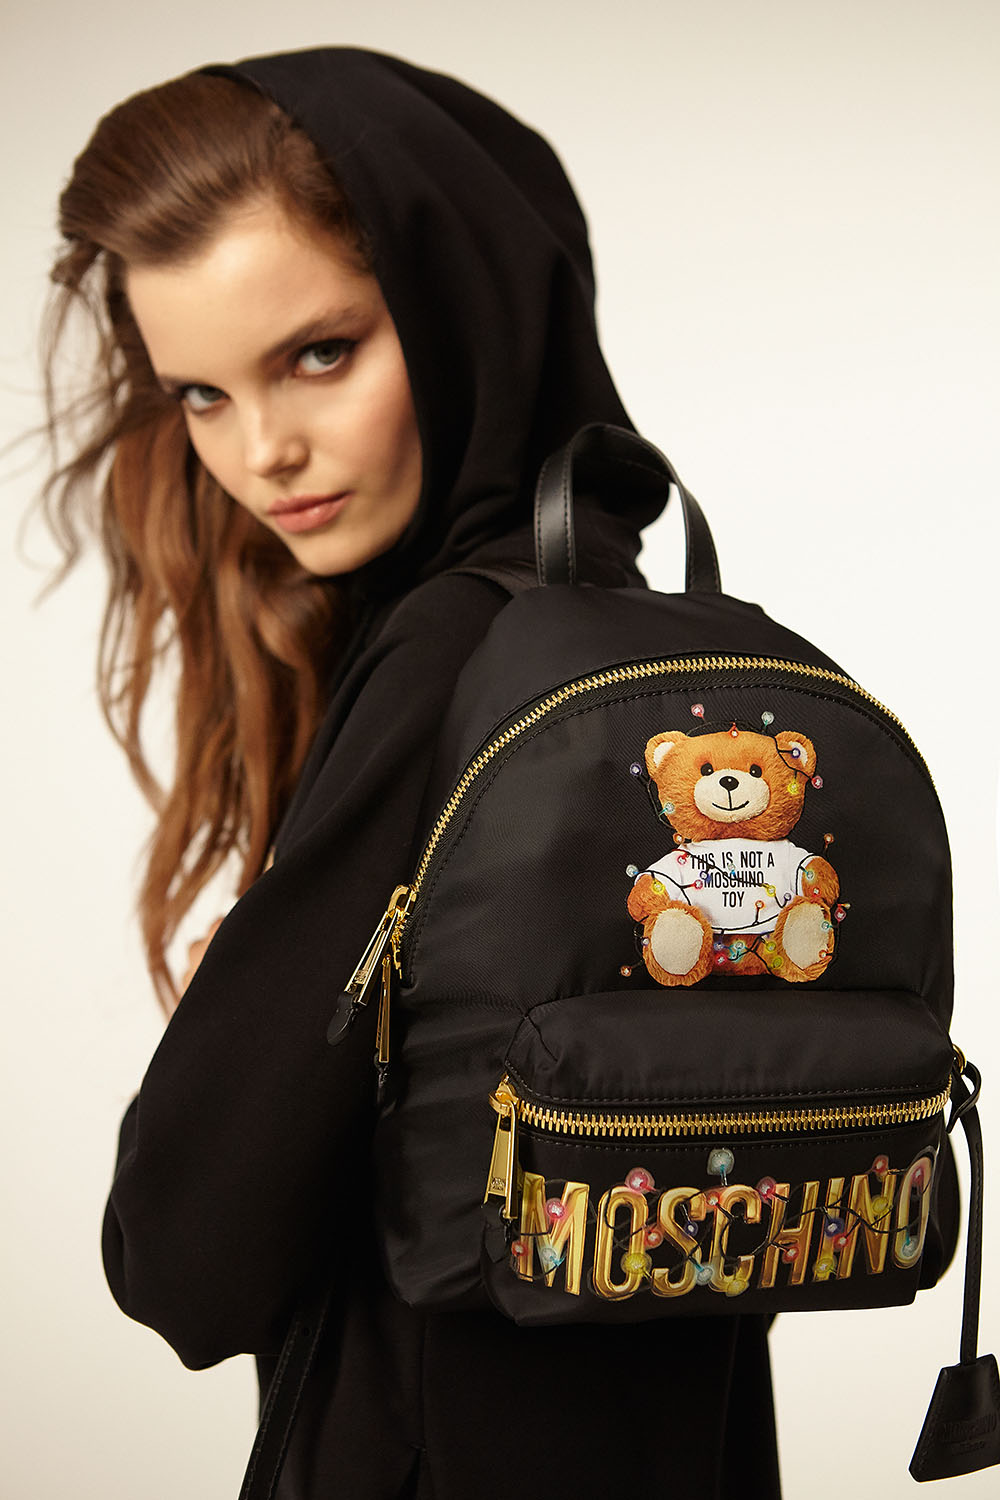 MOSCHINO TEDDY HOLIDAY  - IMAGES (6)